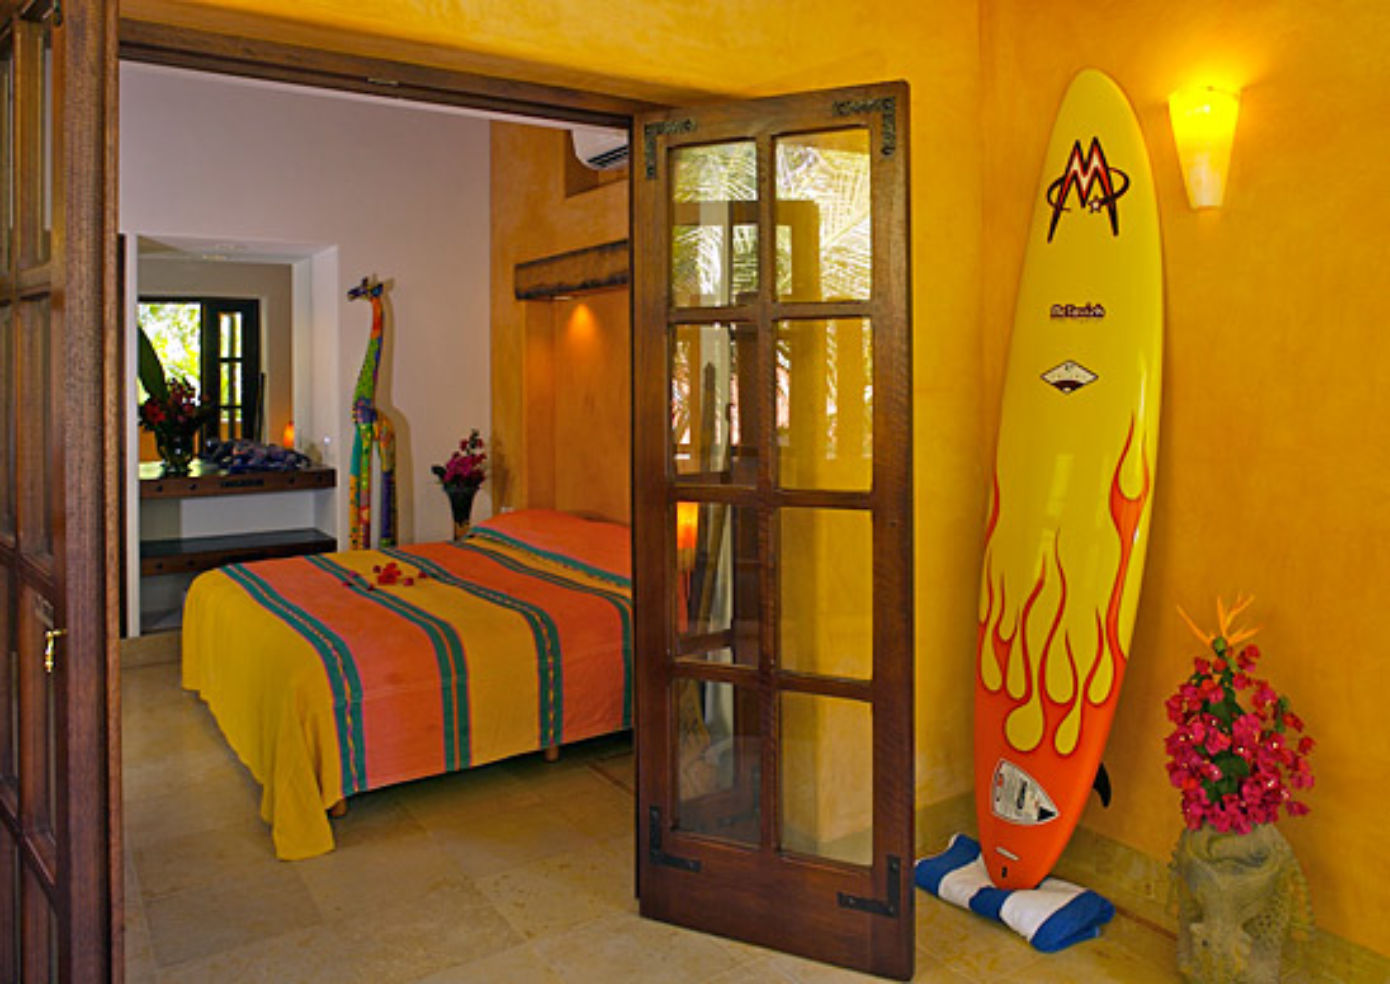 Eight thatched-roof bungalows and two deluxe suites make up the complex at the Inn at Manzanillo Bay.